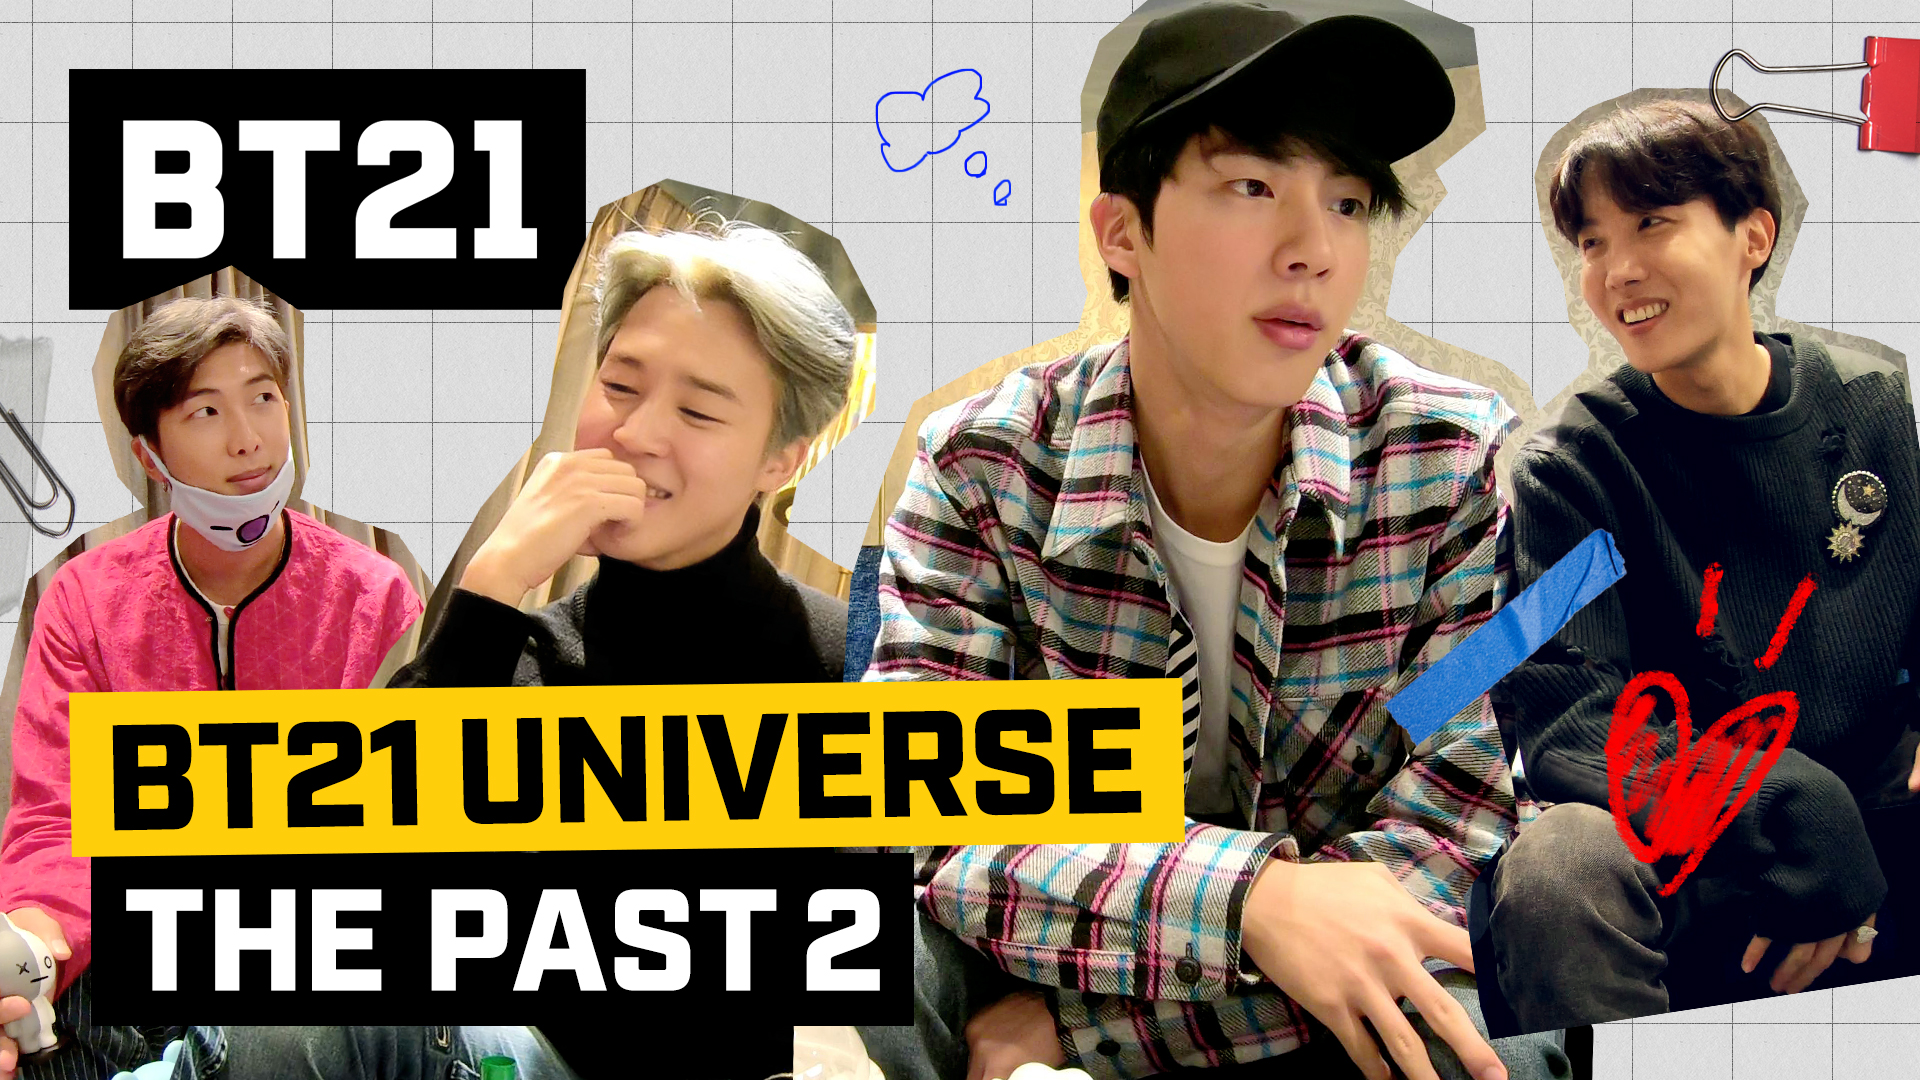 [BT21] BT21 UNIVERSE - THE PAST 2